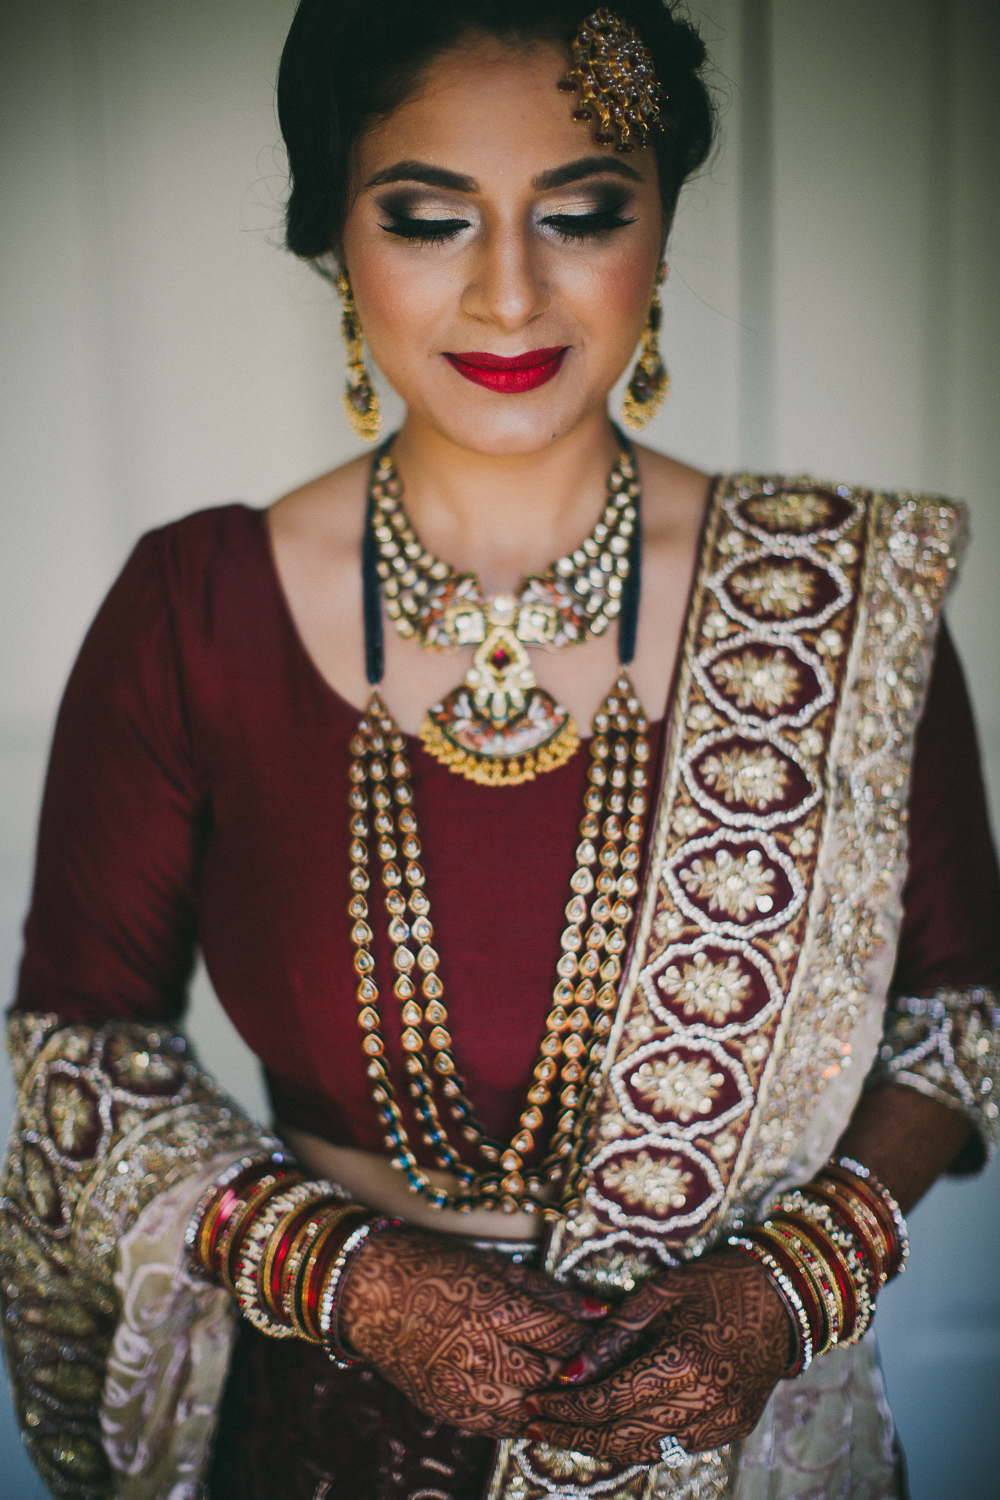 lovestoriesbyhalieandalec-indian-wedding-73.jpg